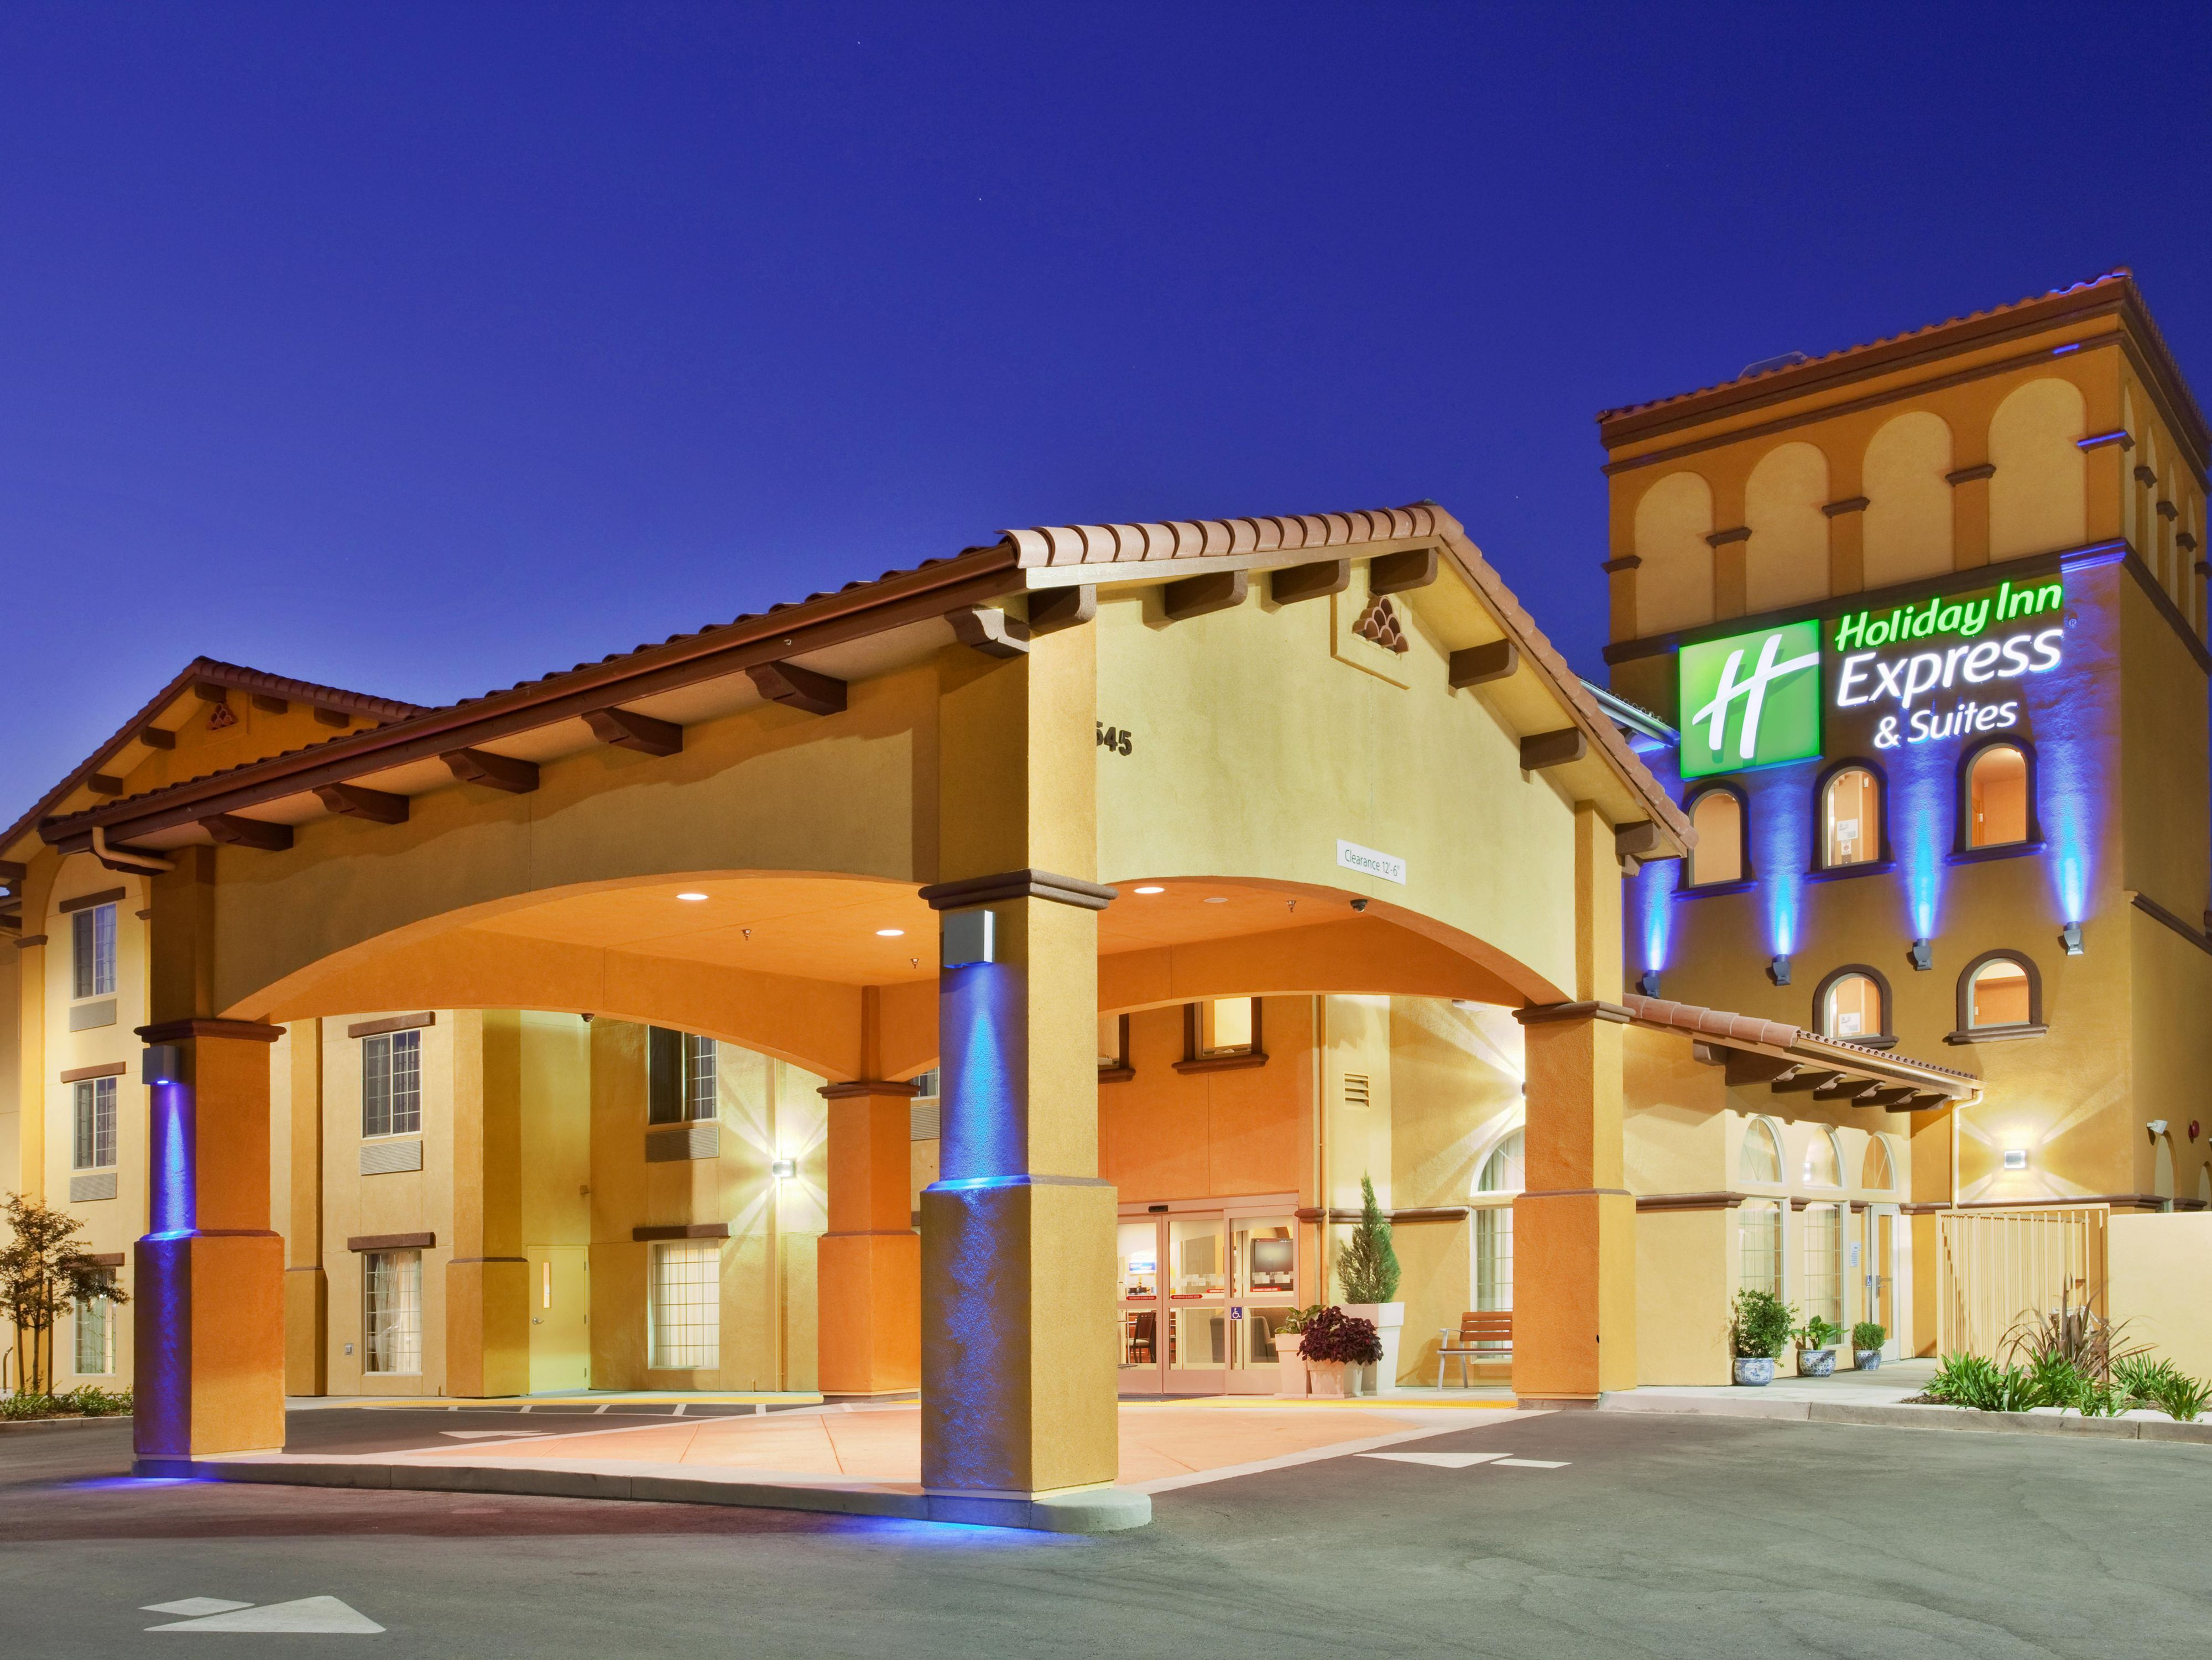 Holiday Inn Express Suites Willows Hotel By IHG